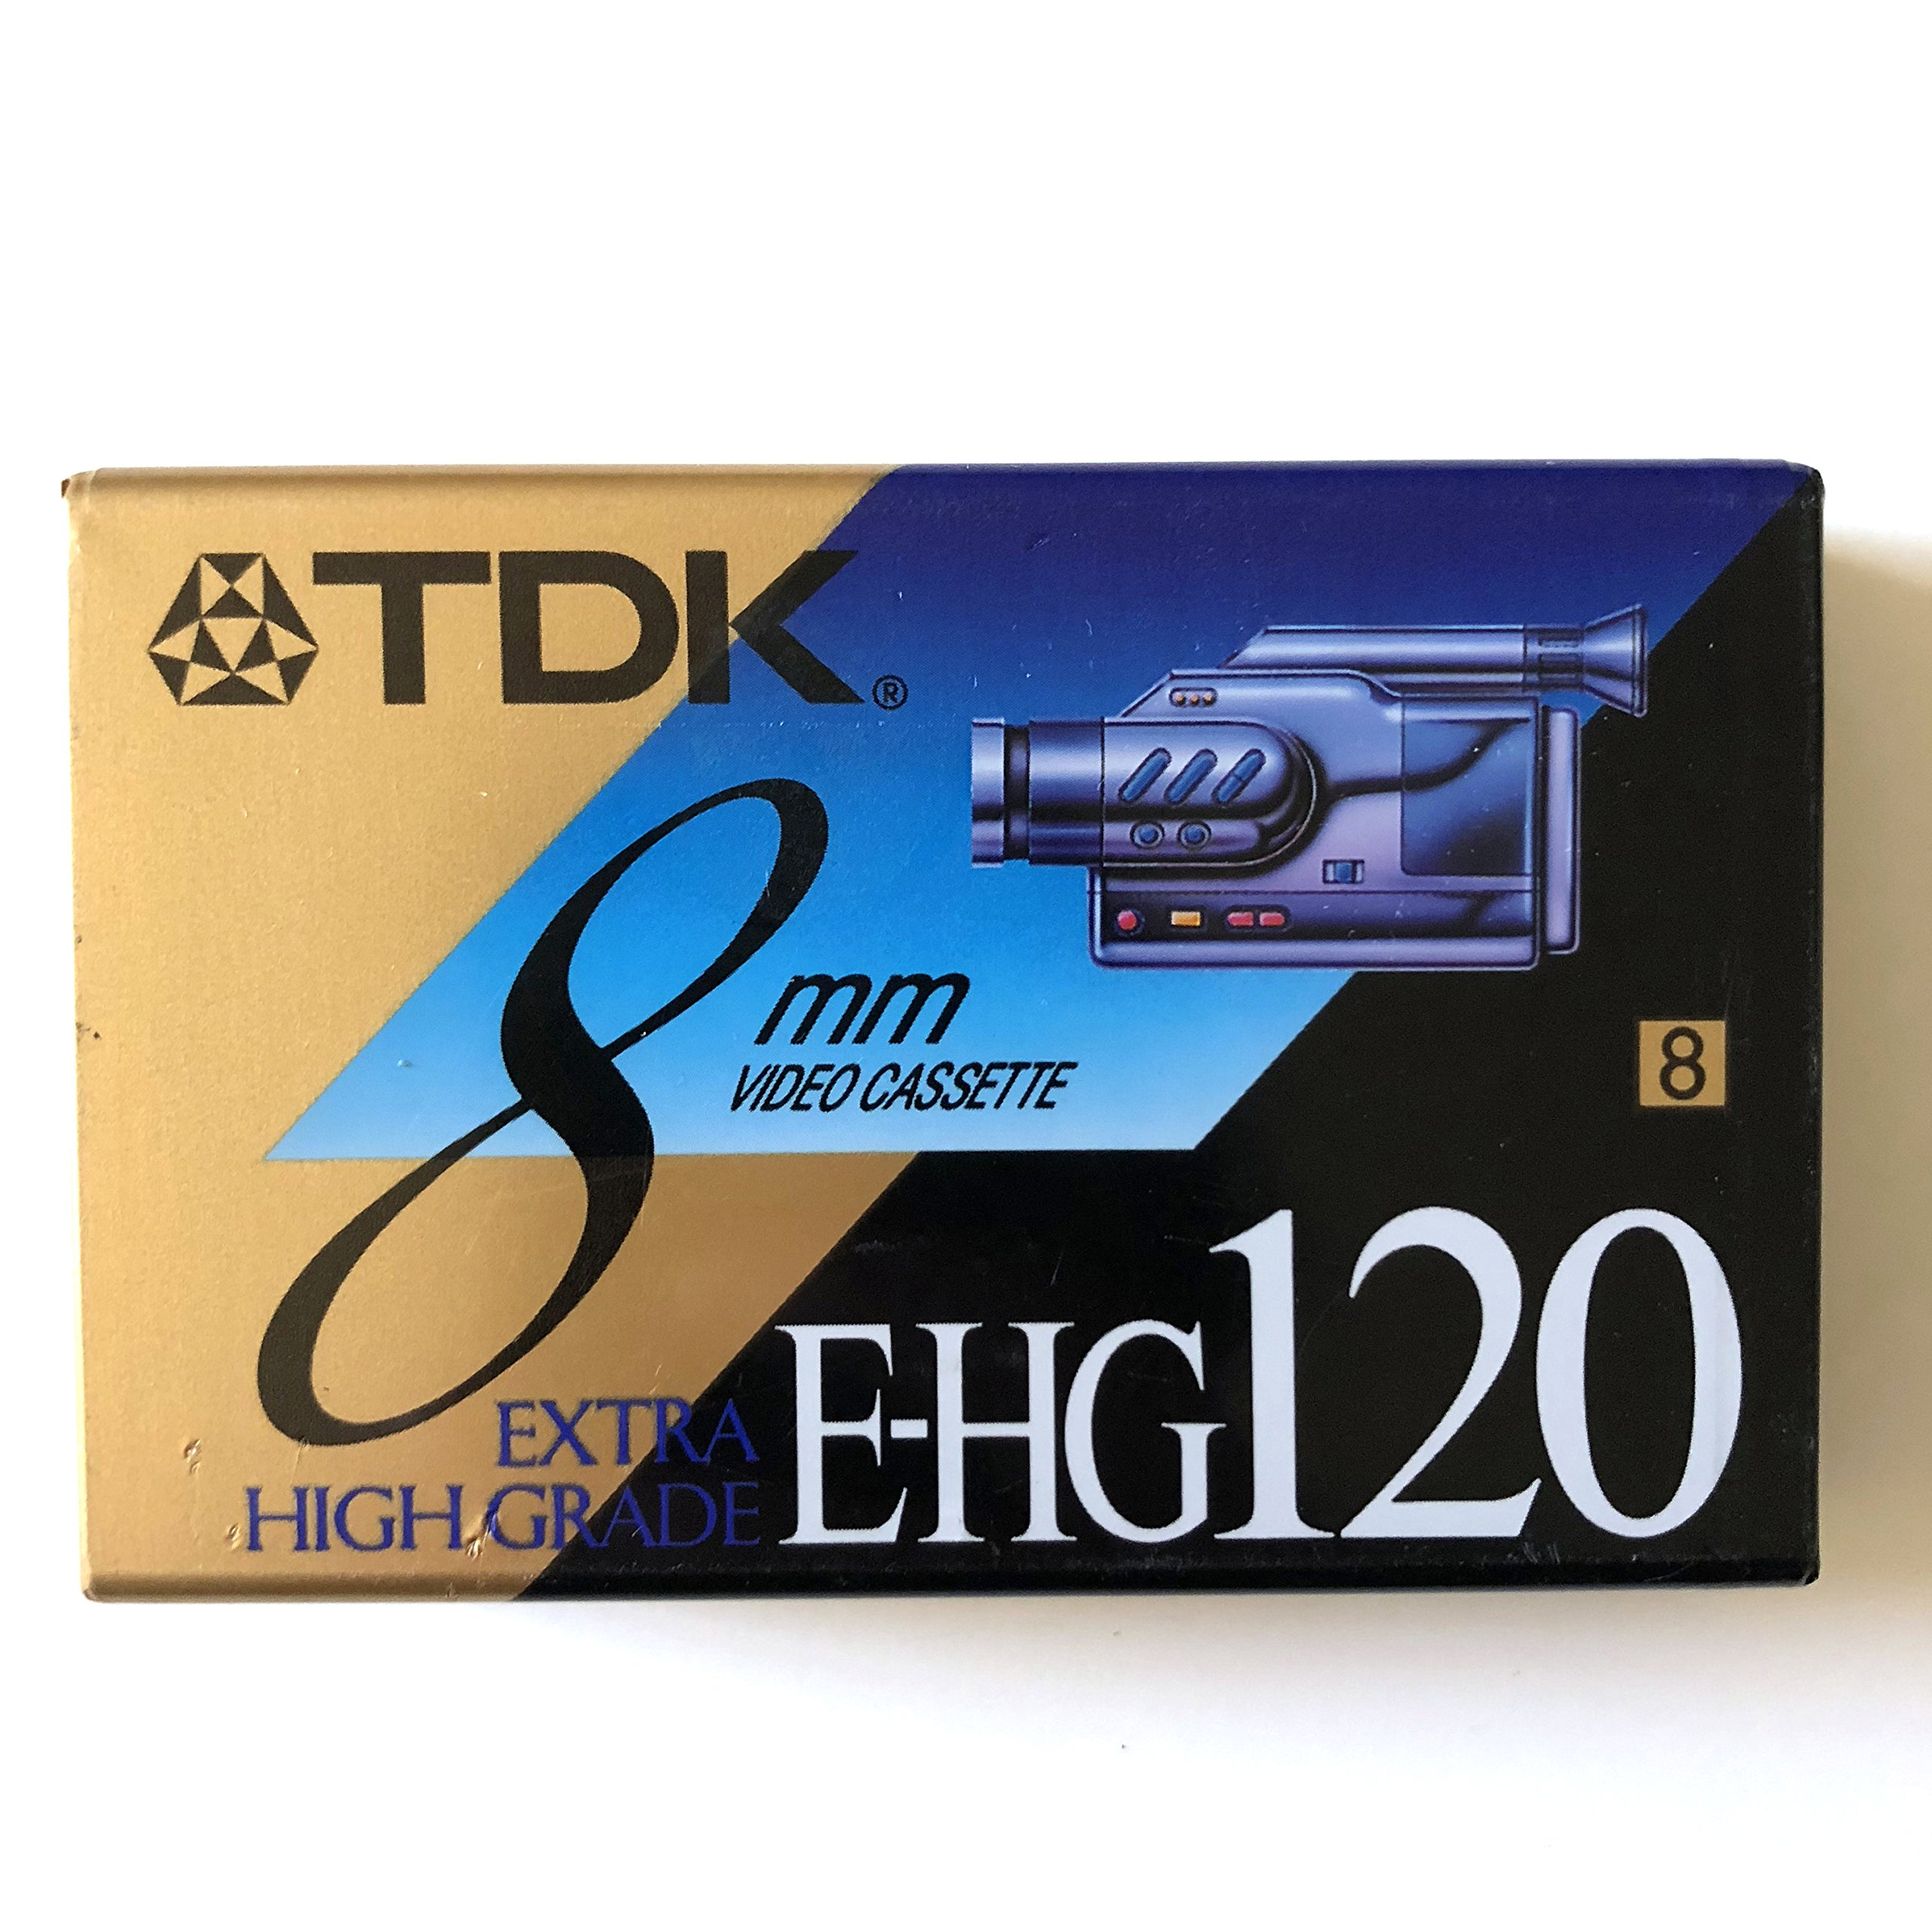 TDK 8mm P6-120 HG High Grade Tape